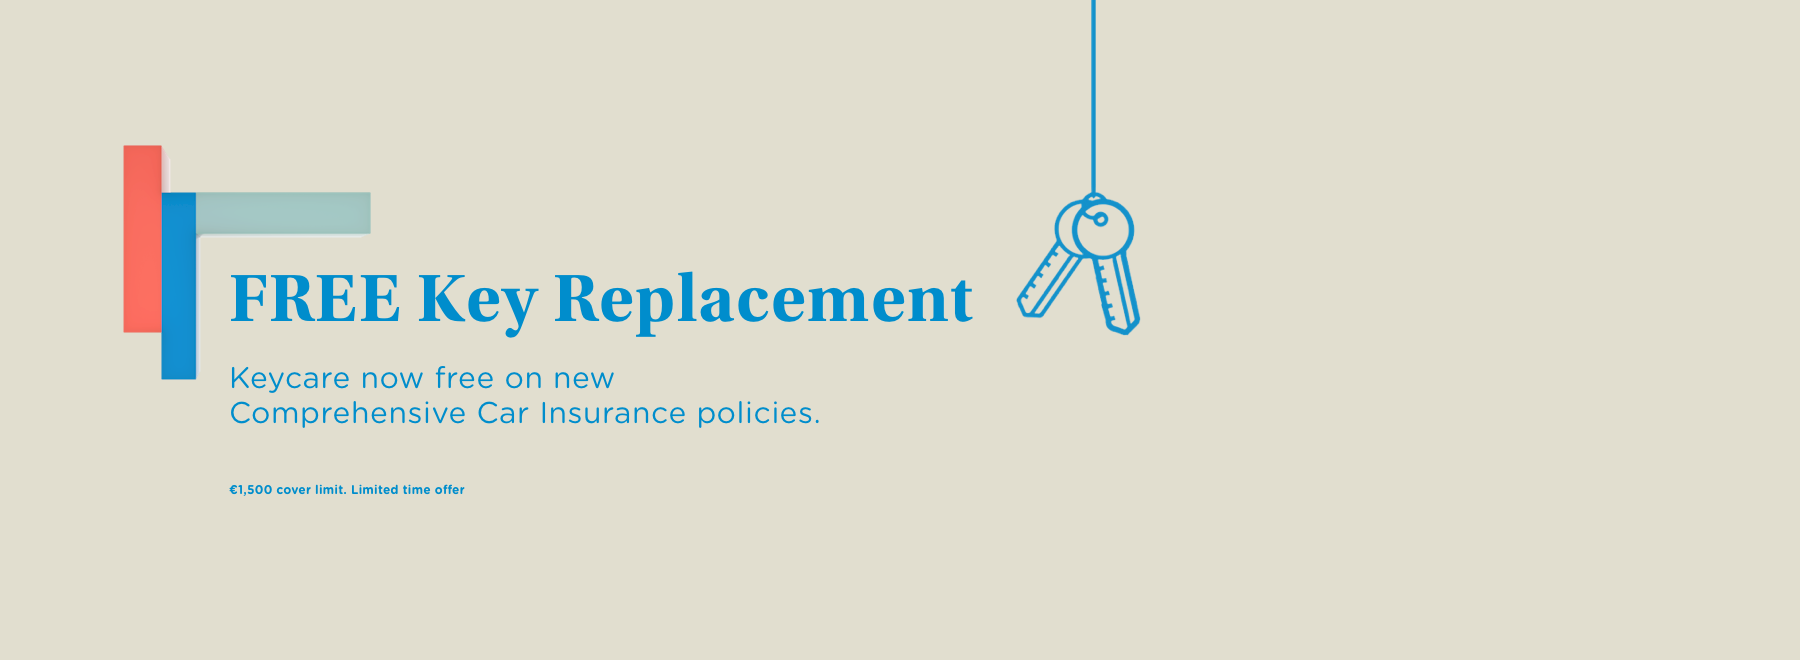 123.ie for your insurance needs in ireland